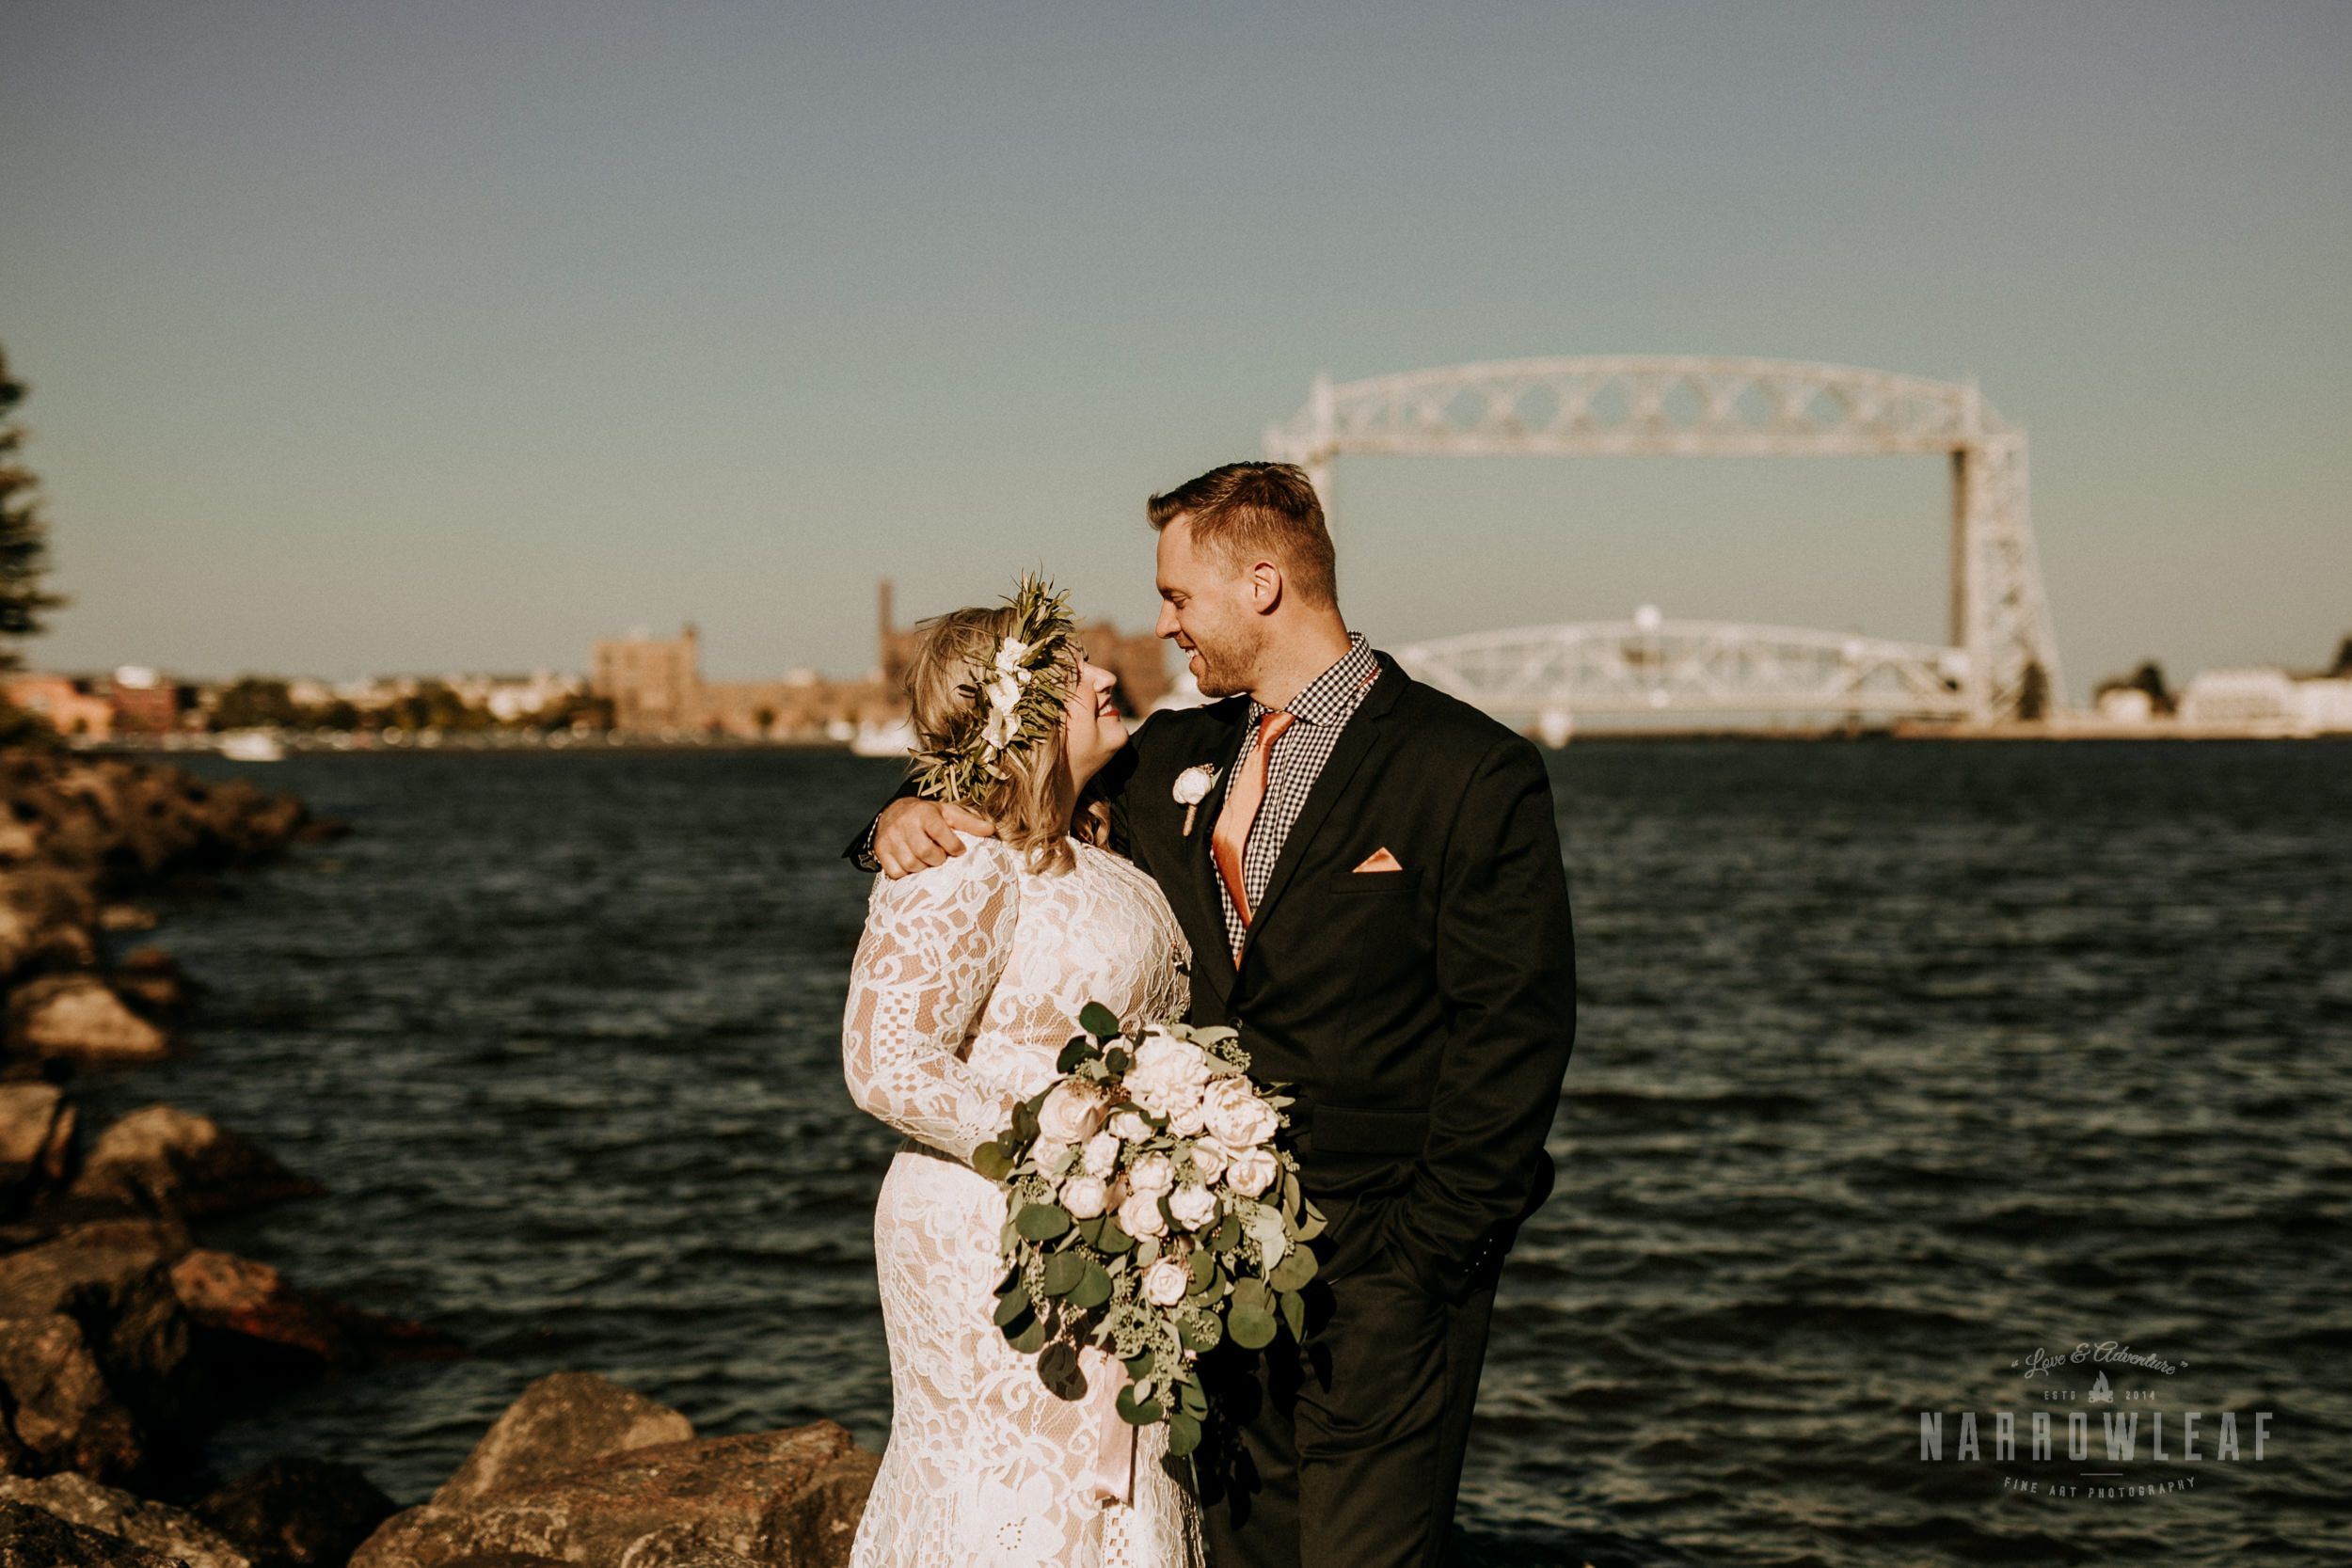 Duluth-MN-adventure-elopement-Pier-B-Resort-on-lake-superior-Narrowleaf-love-and-adventure-photography-8.jpg